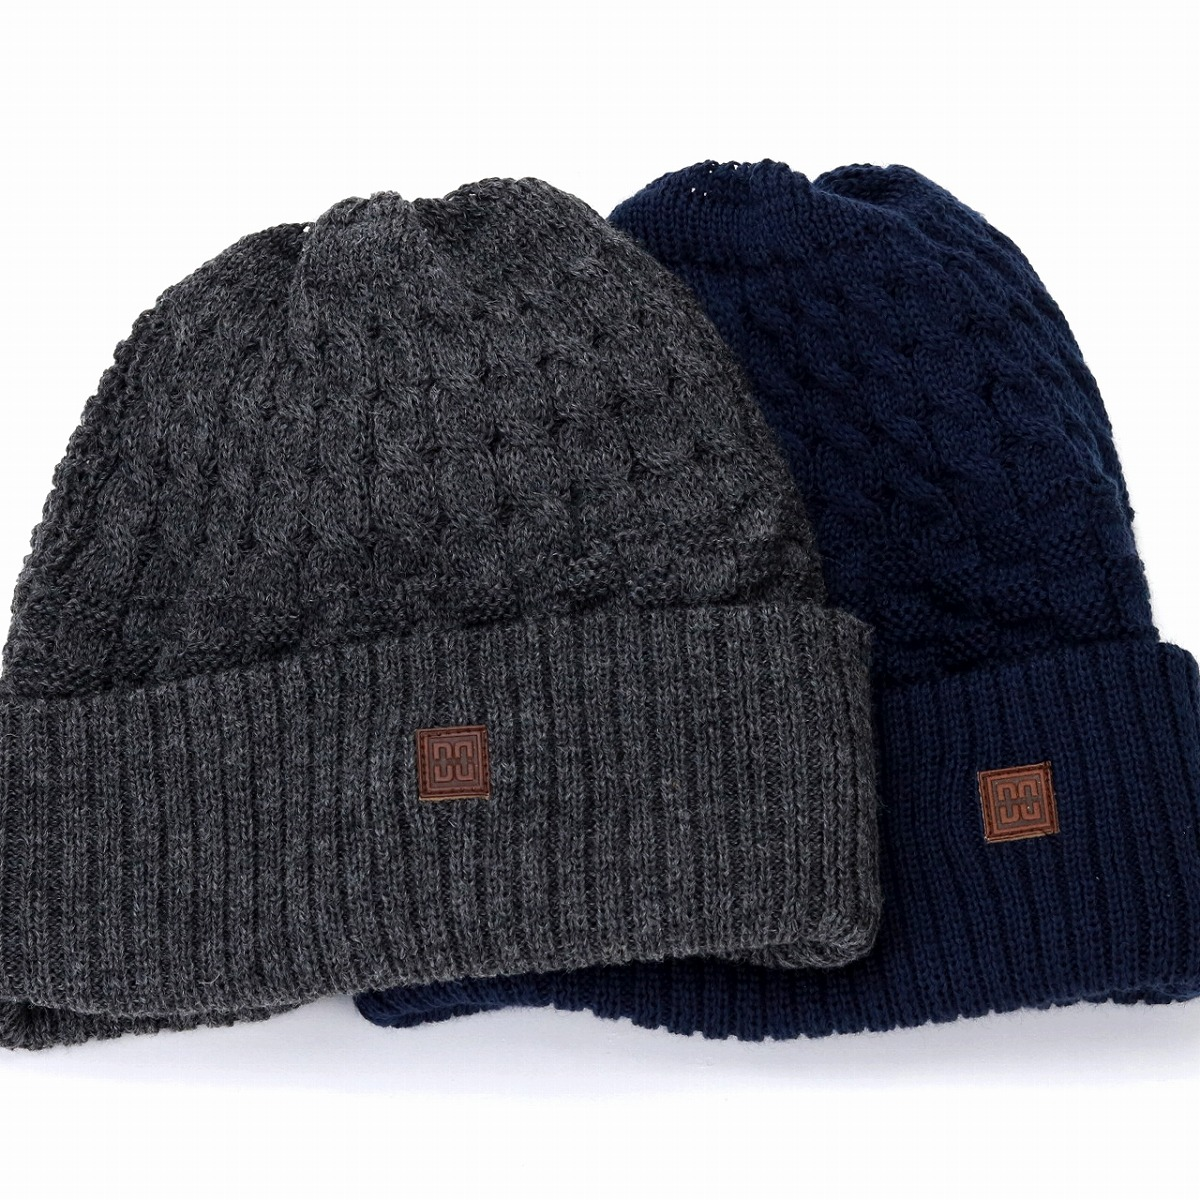 ... Simple plain cold protection CADET48 gray charcoal  beanie cap  man  Christmas present hat with ... e014ae53f59